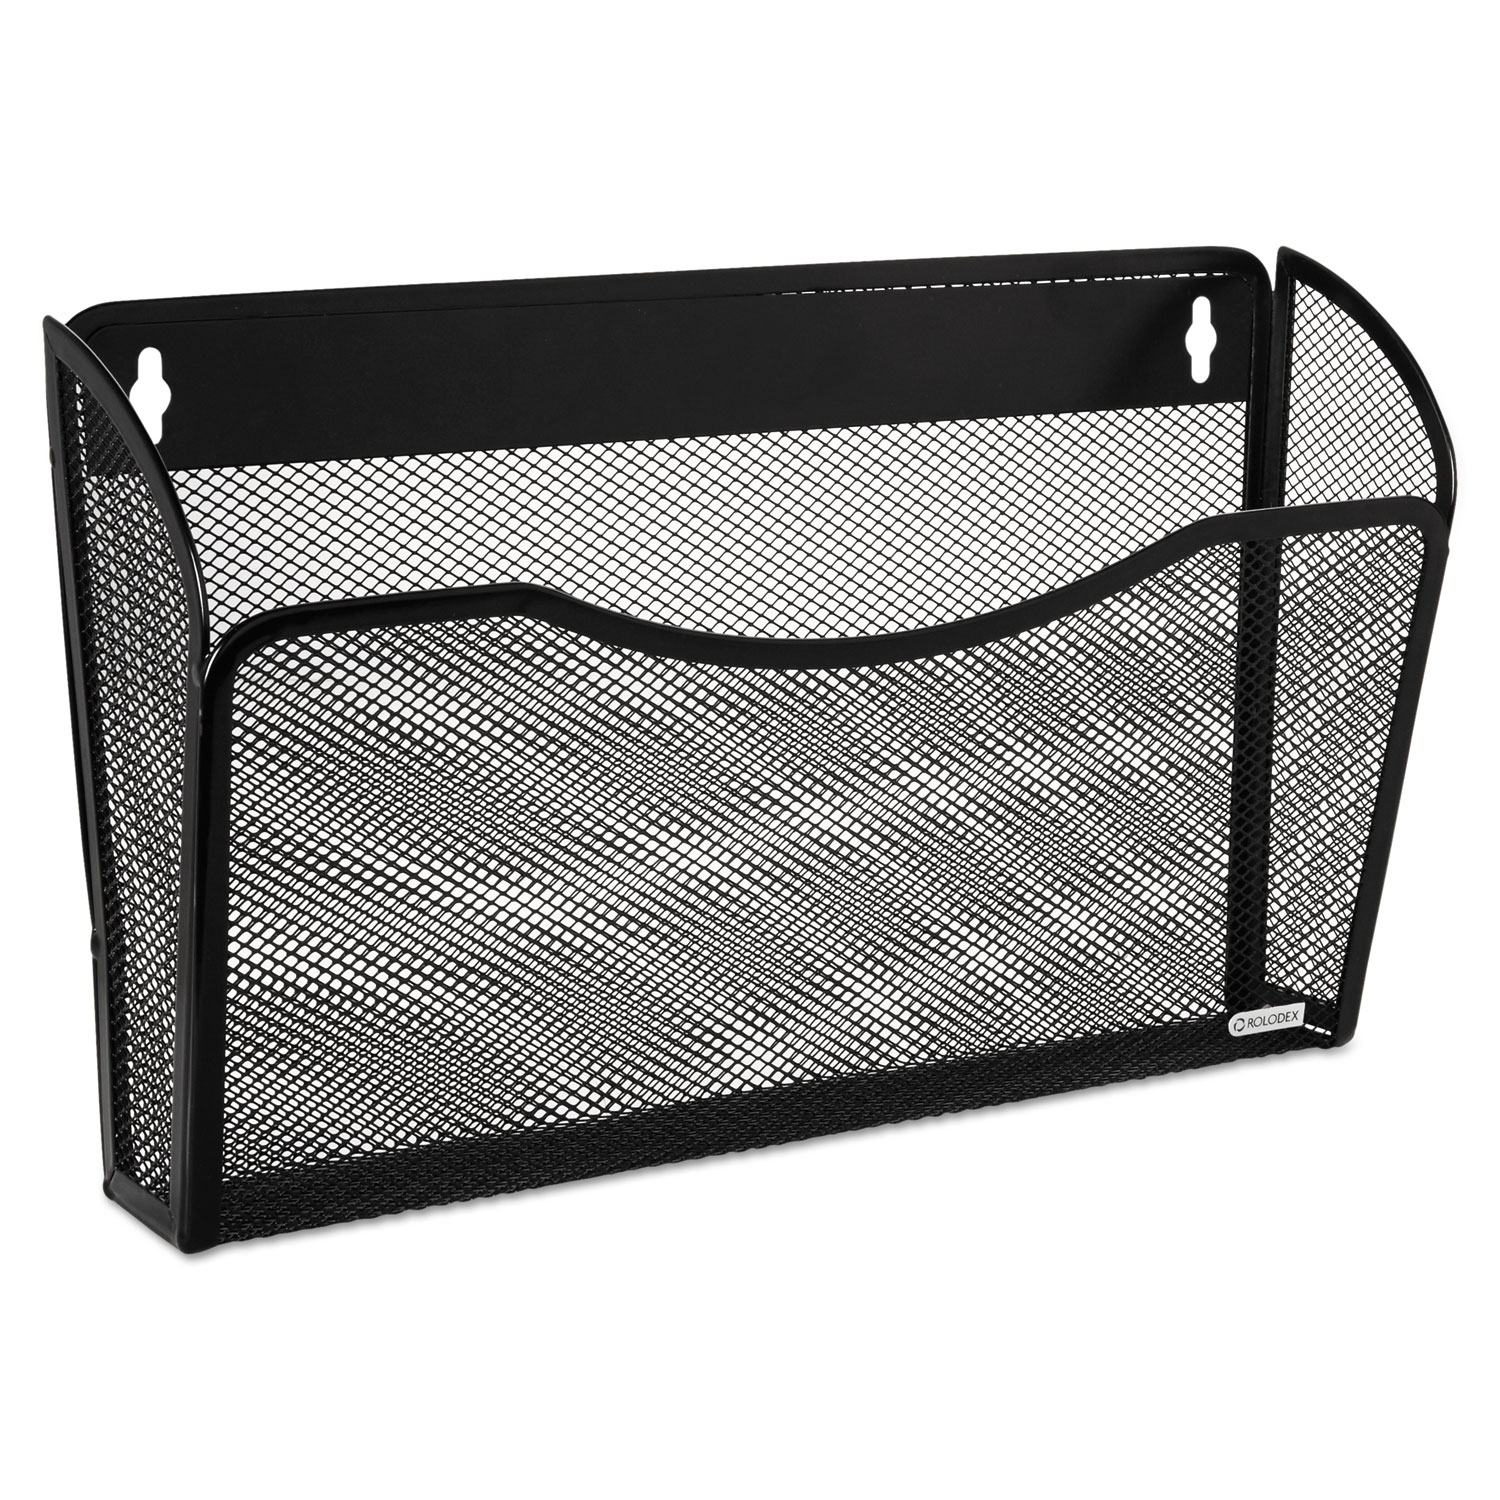 Office door mail holder Magnetic Single Pocket Wire Mesh Wall File Letter Black Affordable Office Furniture And Supplies Enerjiclub Single Pocket Wire Mesh Wall File Letter Black Affordable Office